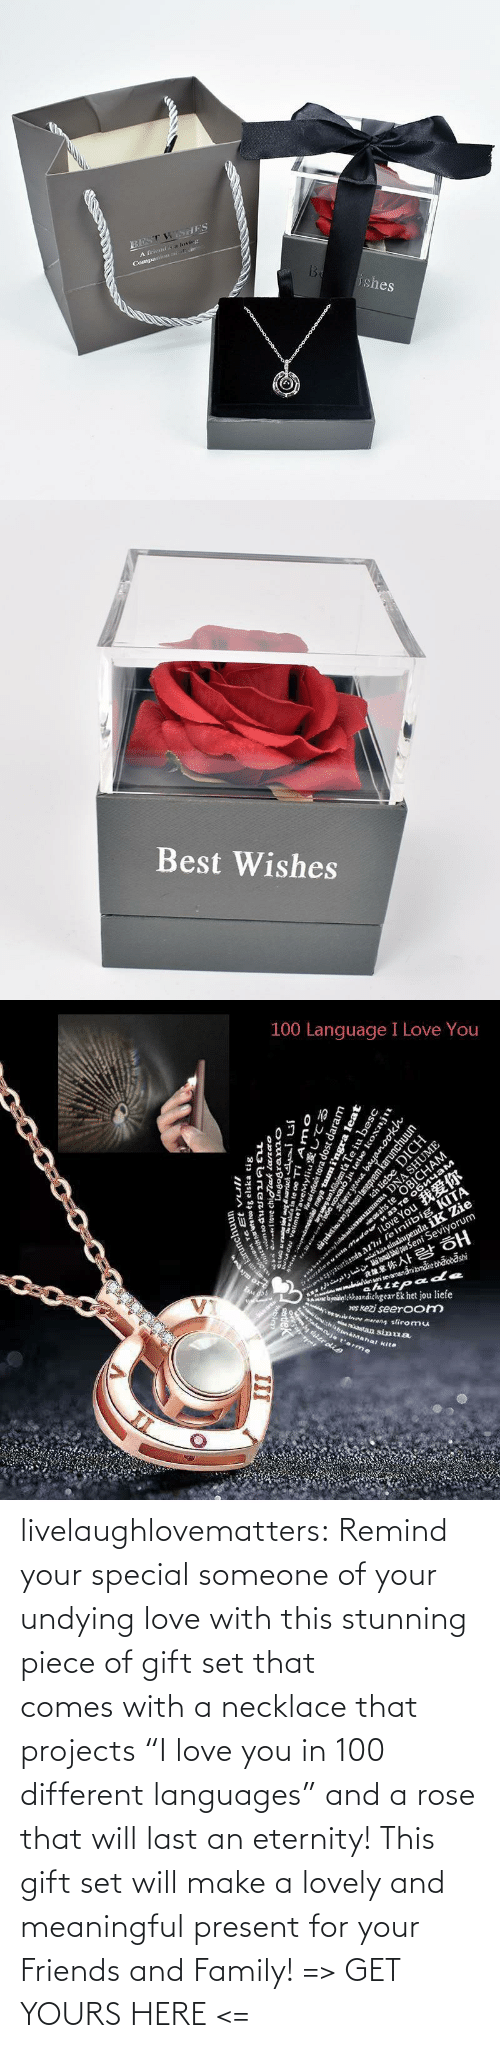 "you: livelaughlovematters:  Remind your special someone of your undying love with this stunning piece of gift set that comes with a necklace that projects ""I love you in 100 different languages"" and a rose that will last an eternity! This gift set will make a lovely and meaningful present for your Friends and Family! => GET YOURS HERE <="